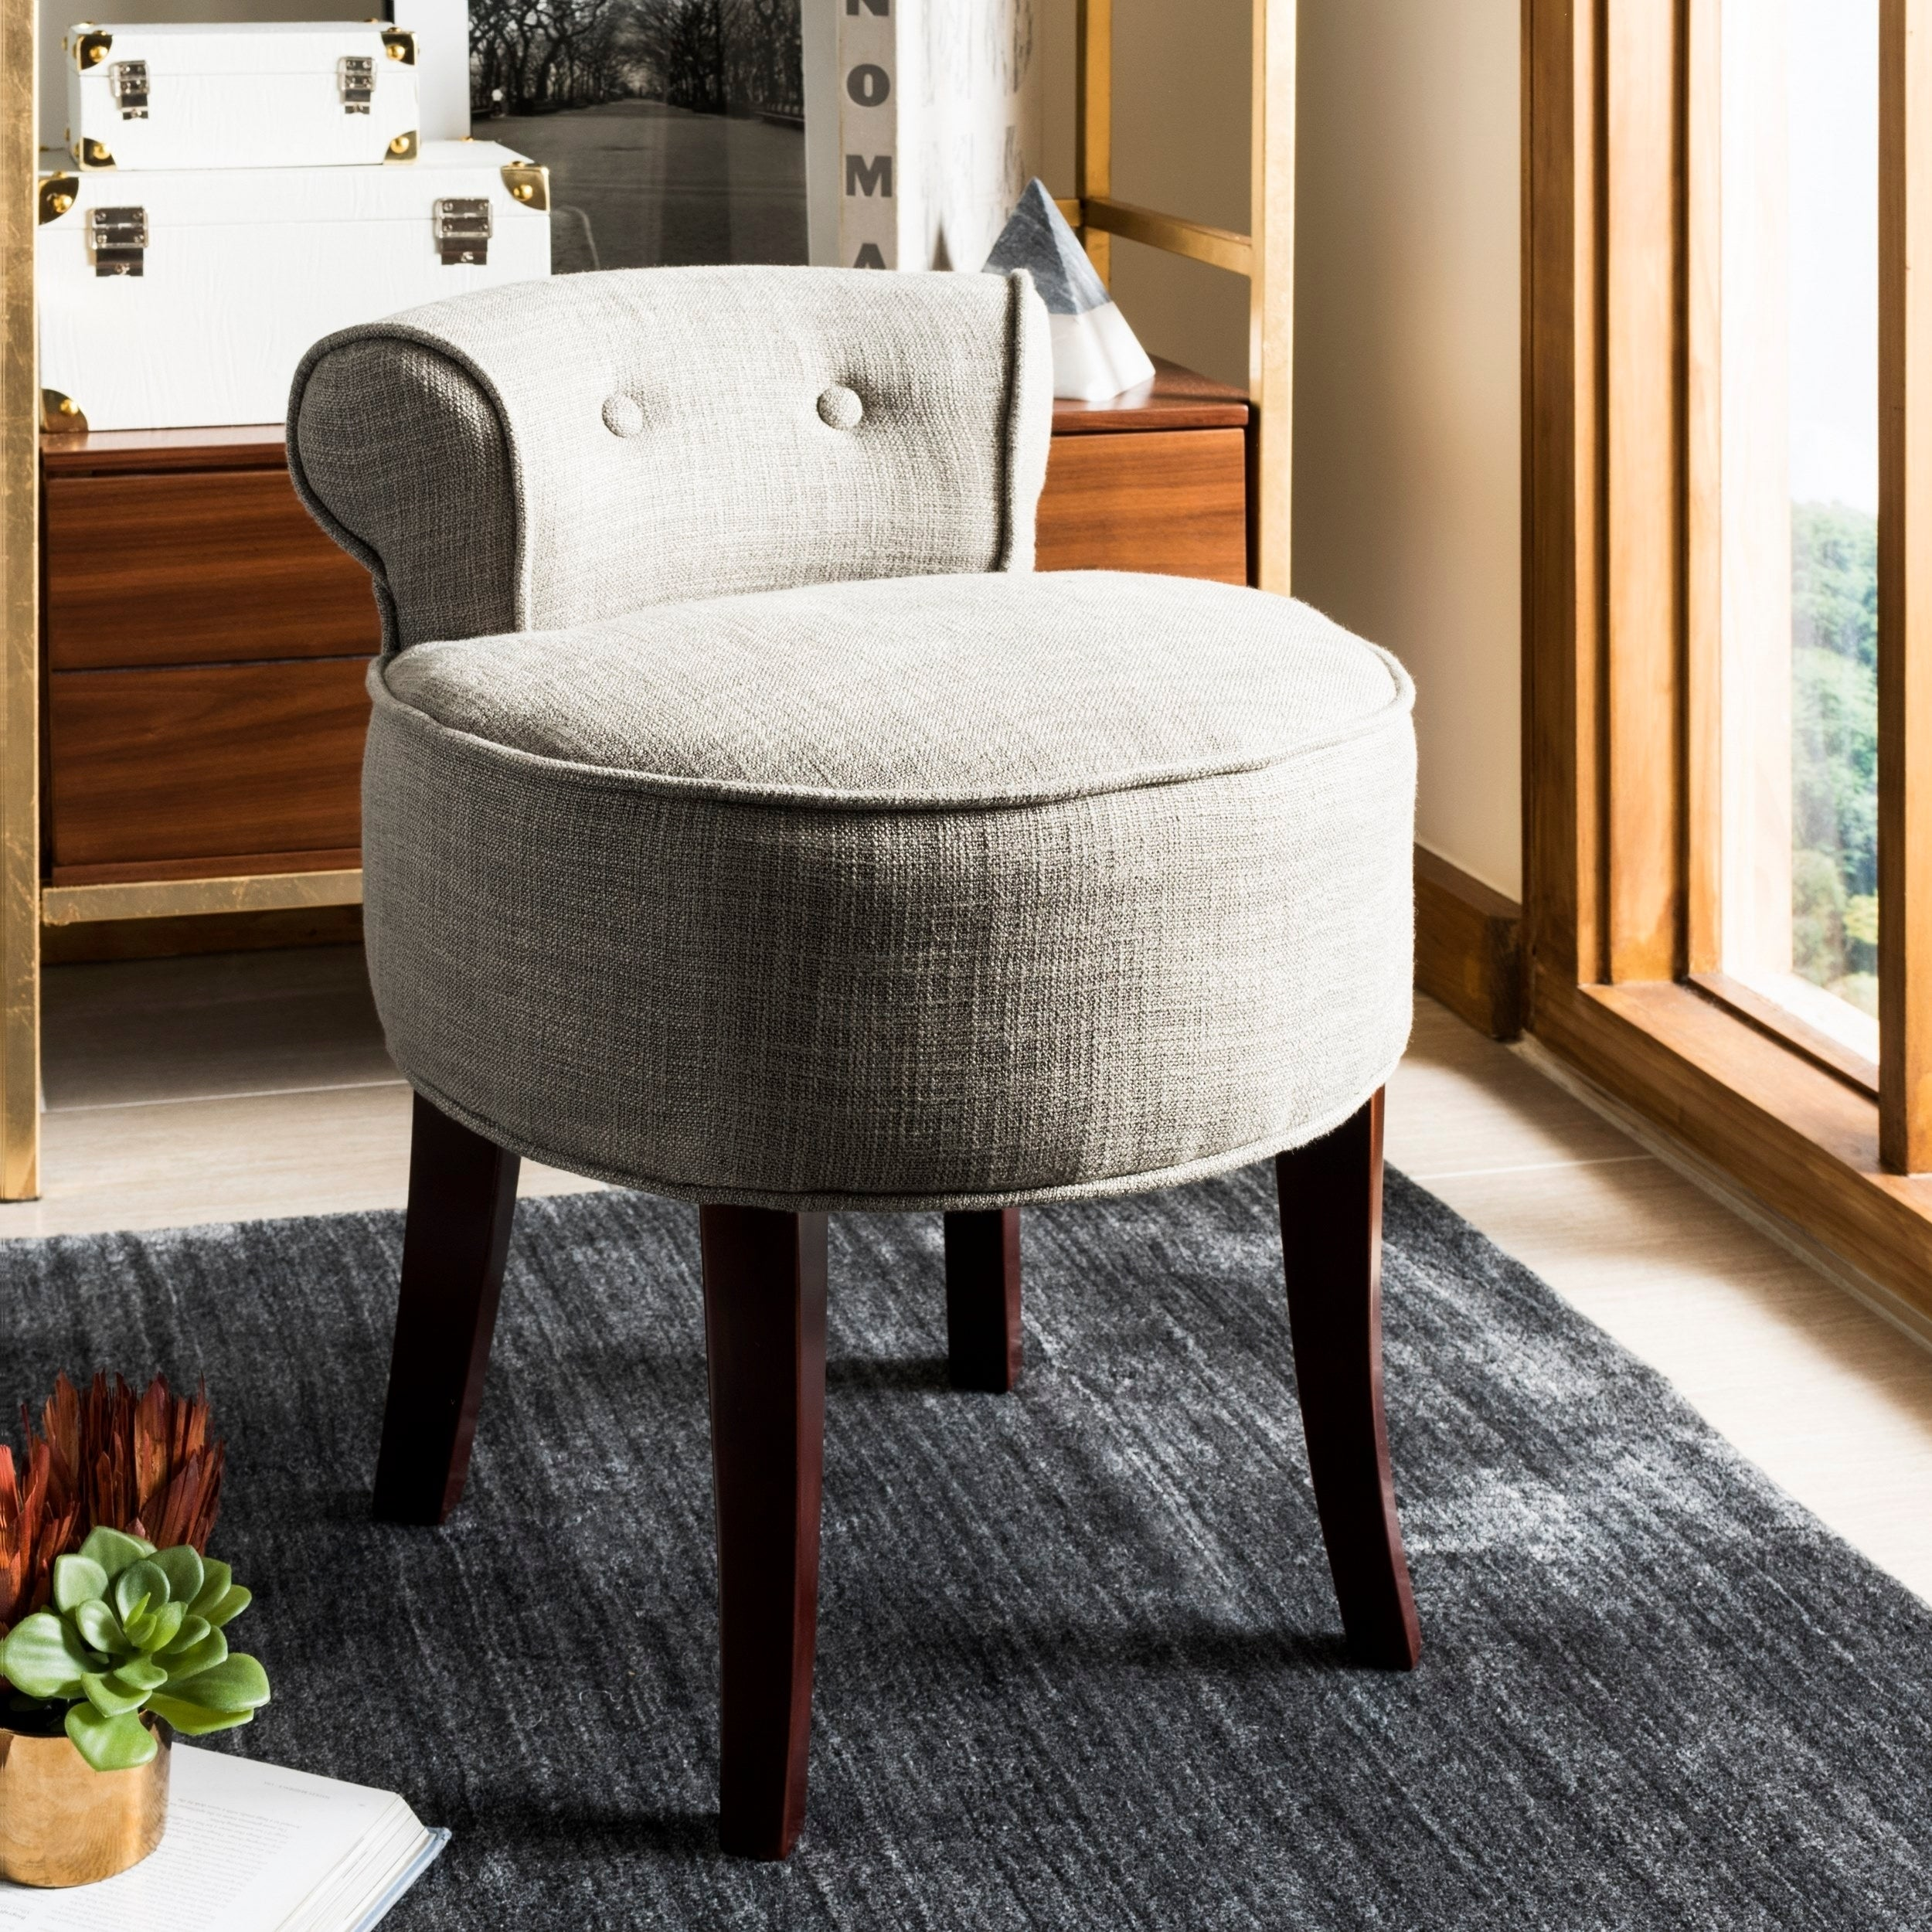 Safavieh Rochelle Dark Grey Petite Vanity Chair 17 9 X 19 X 22 8 On Sale Overstock 6462798